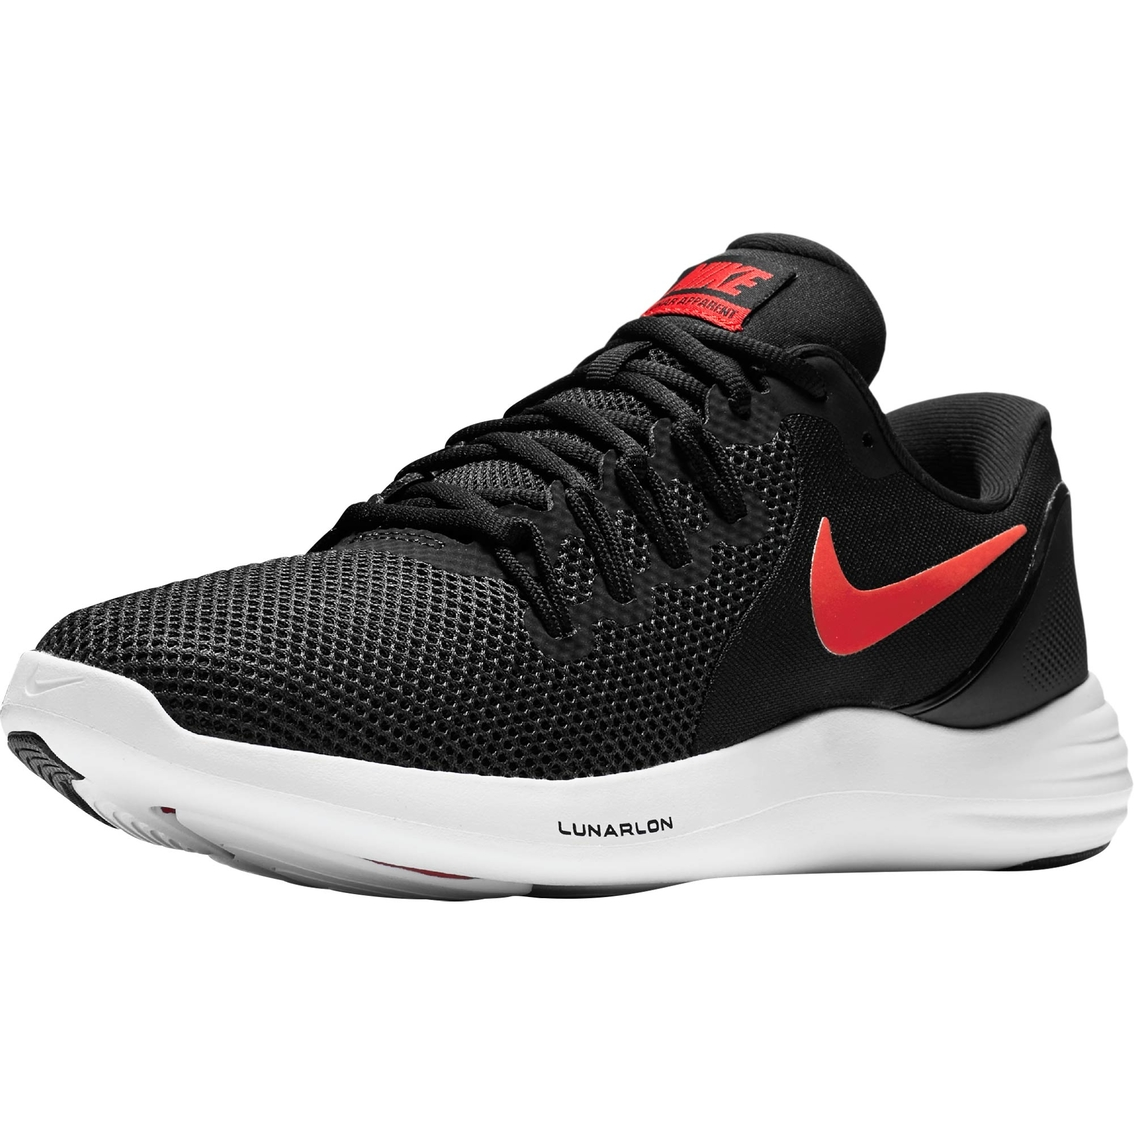 separation shoes b9d8a a5afe Nike Men's Lunar Apparent Running Shoes | Running | Shoes ...